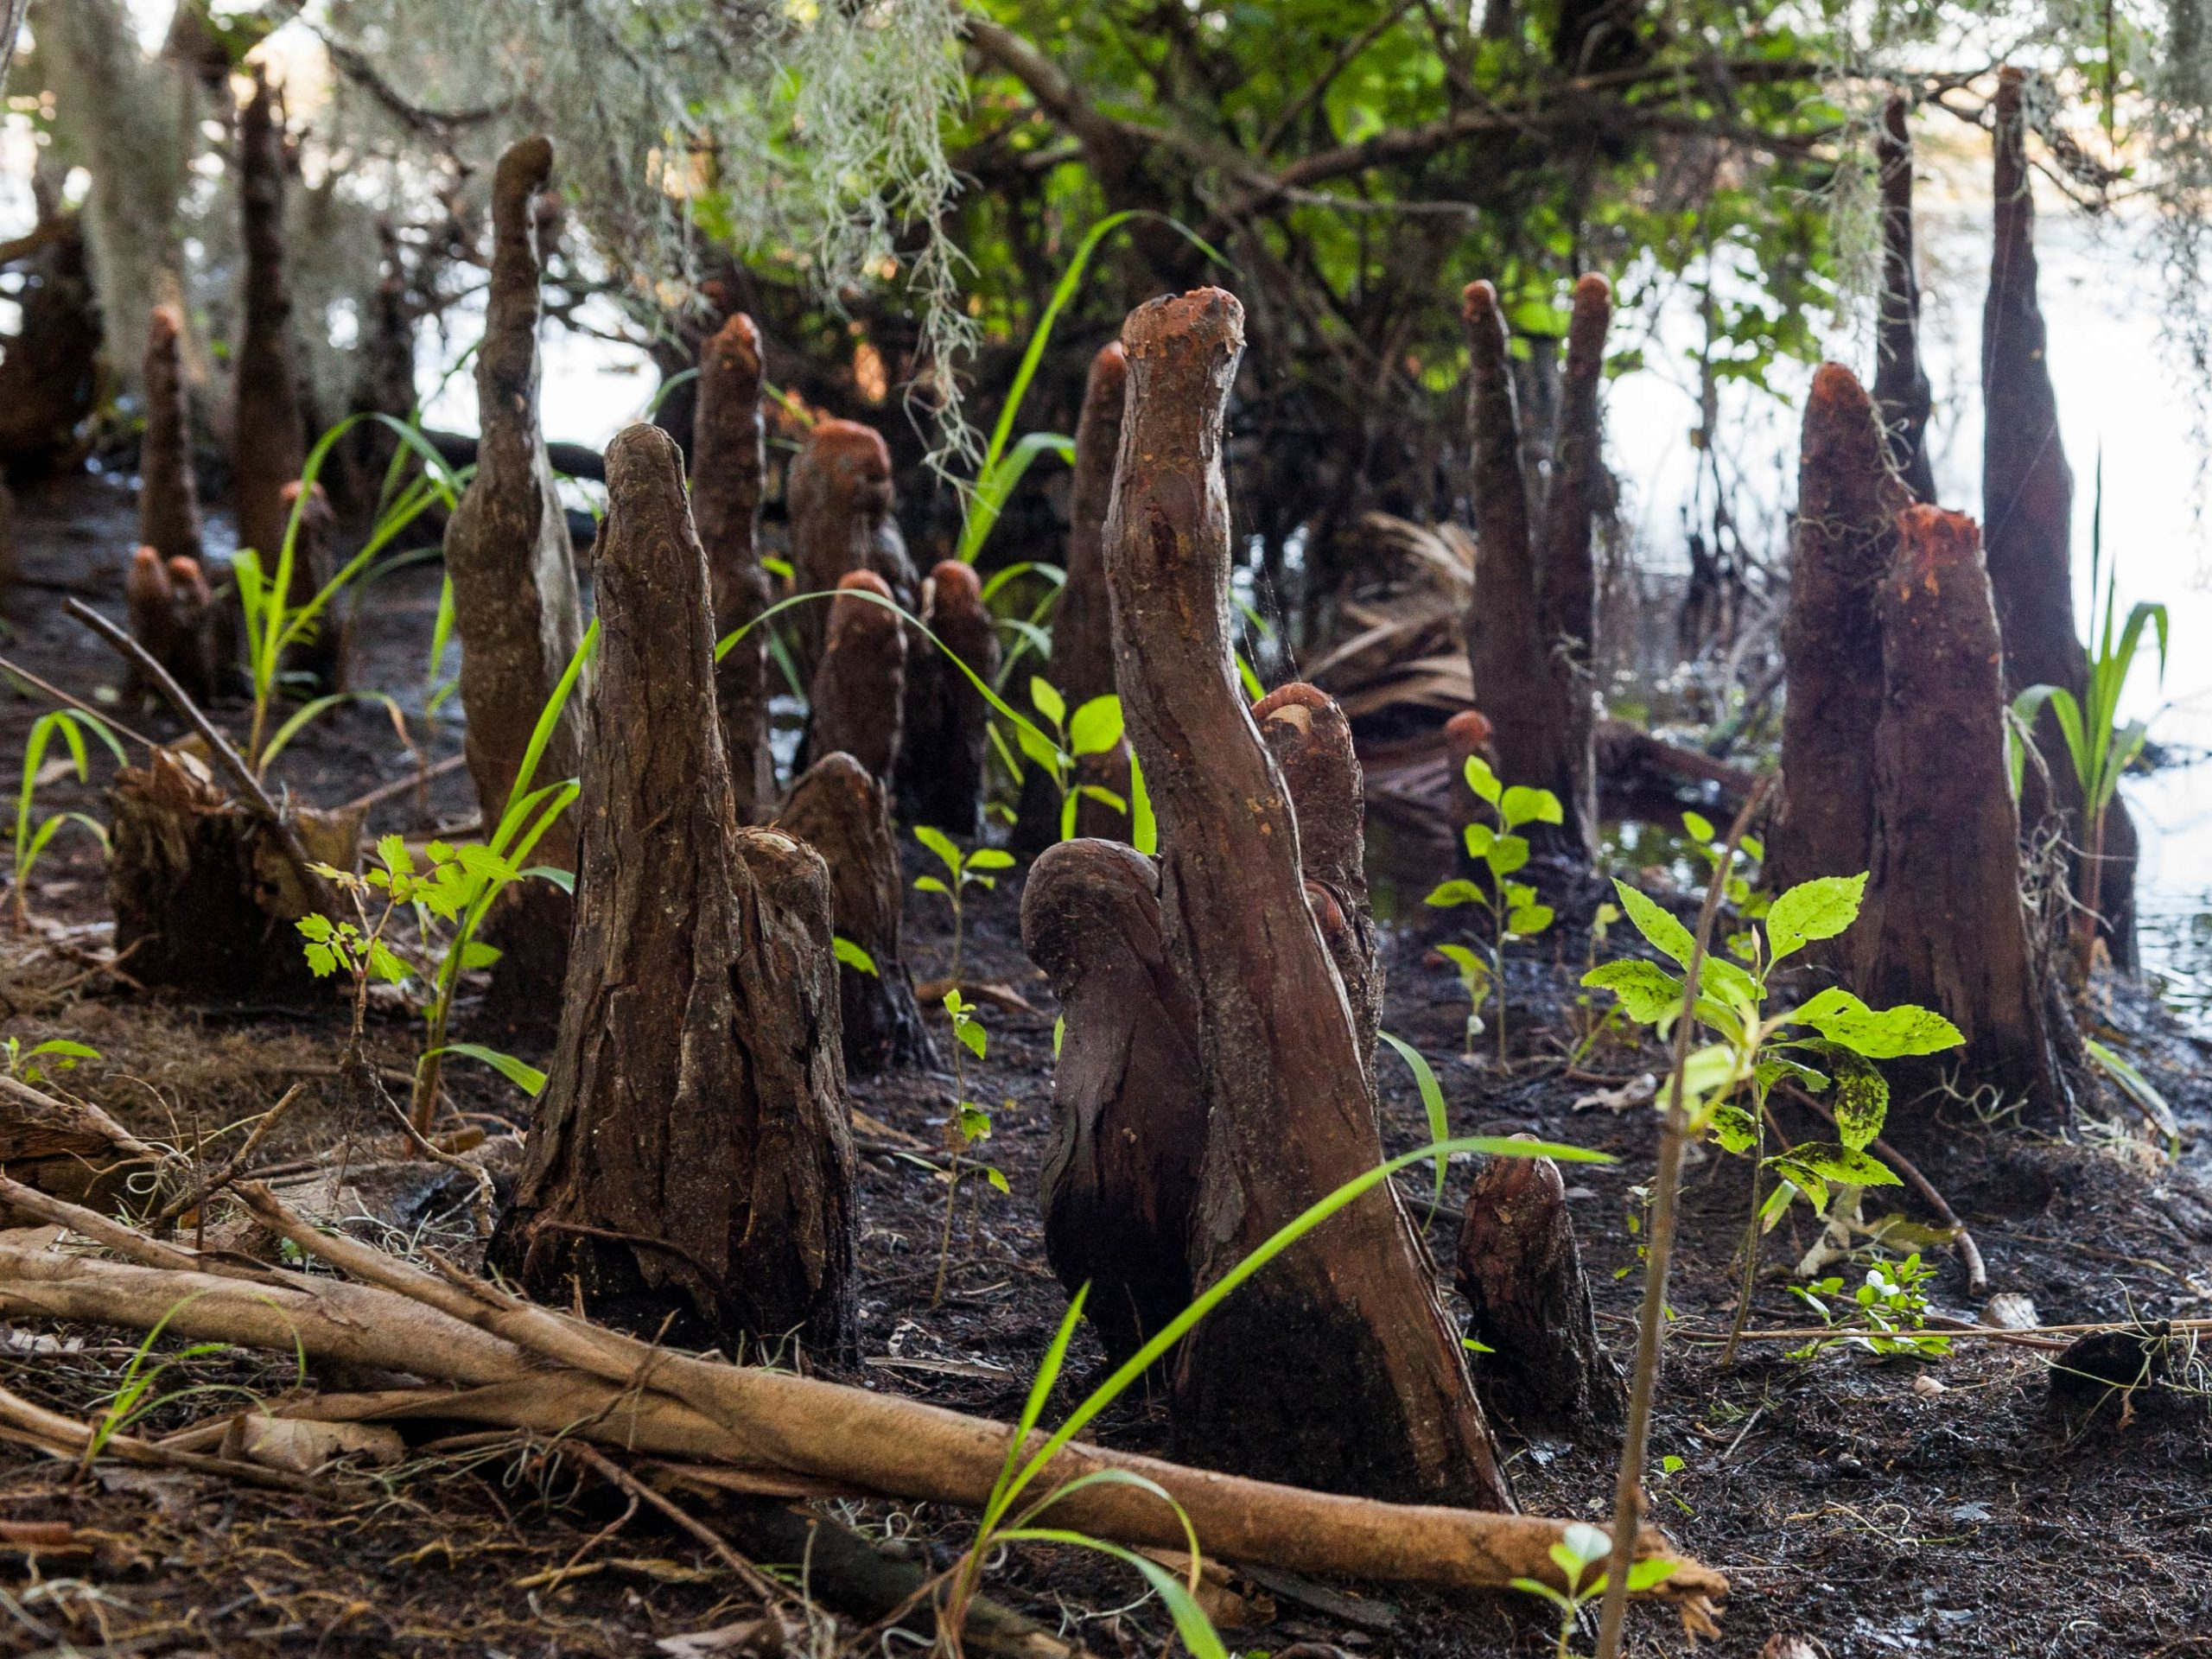 Cypress knees protrude from the swamp